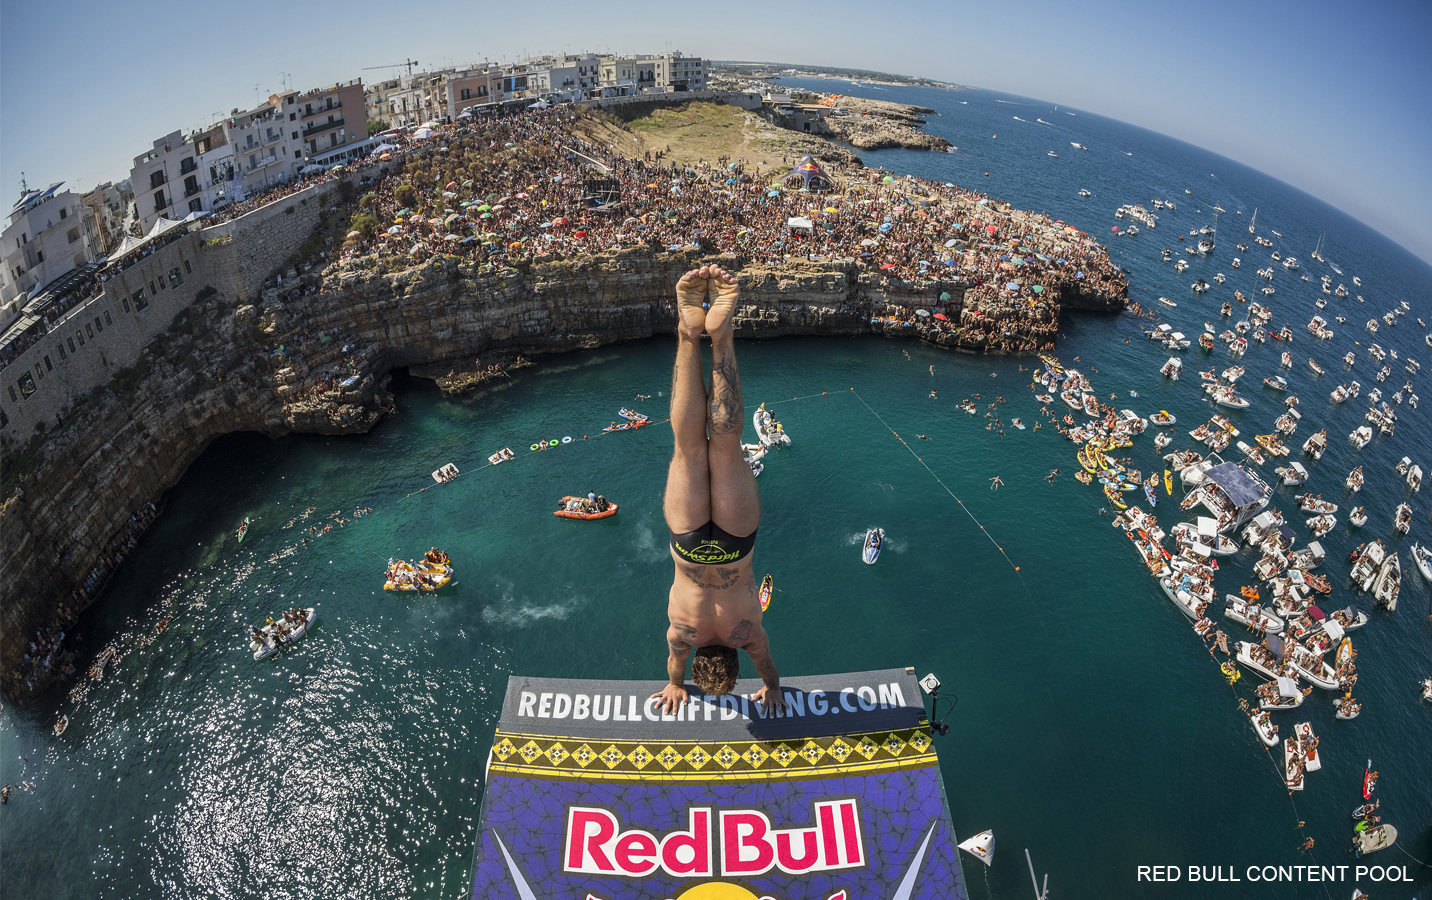 Alessandro de Rose - Red Bull Cliff Diving World Series - Polignano a Mare